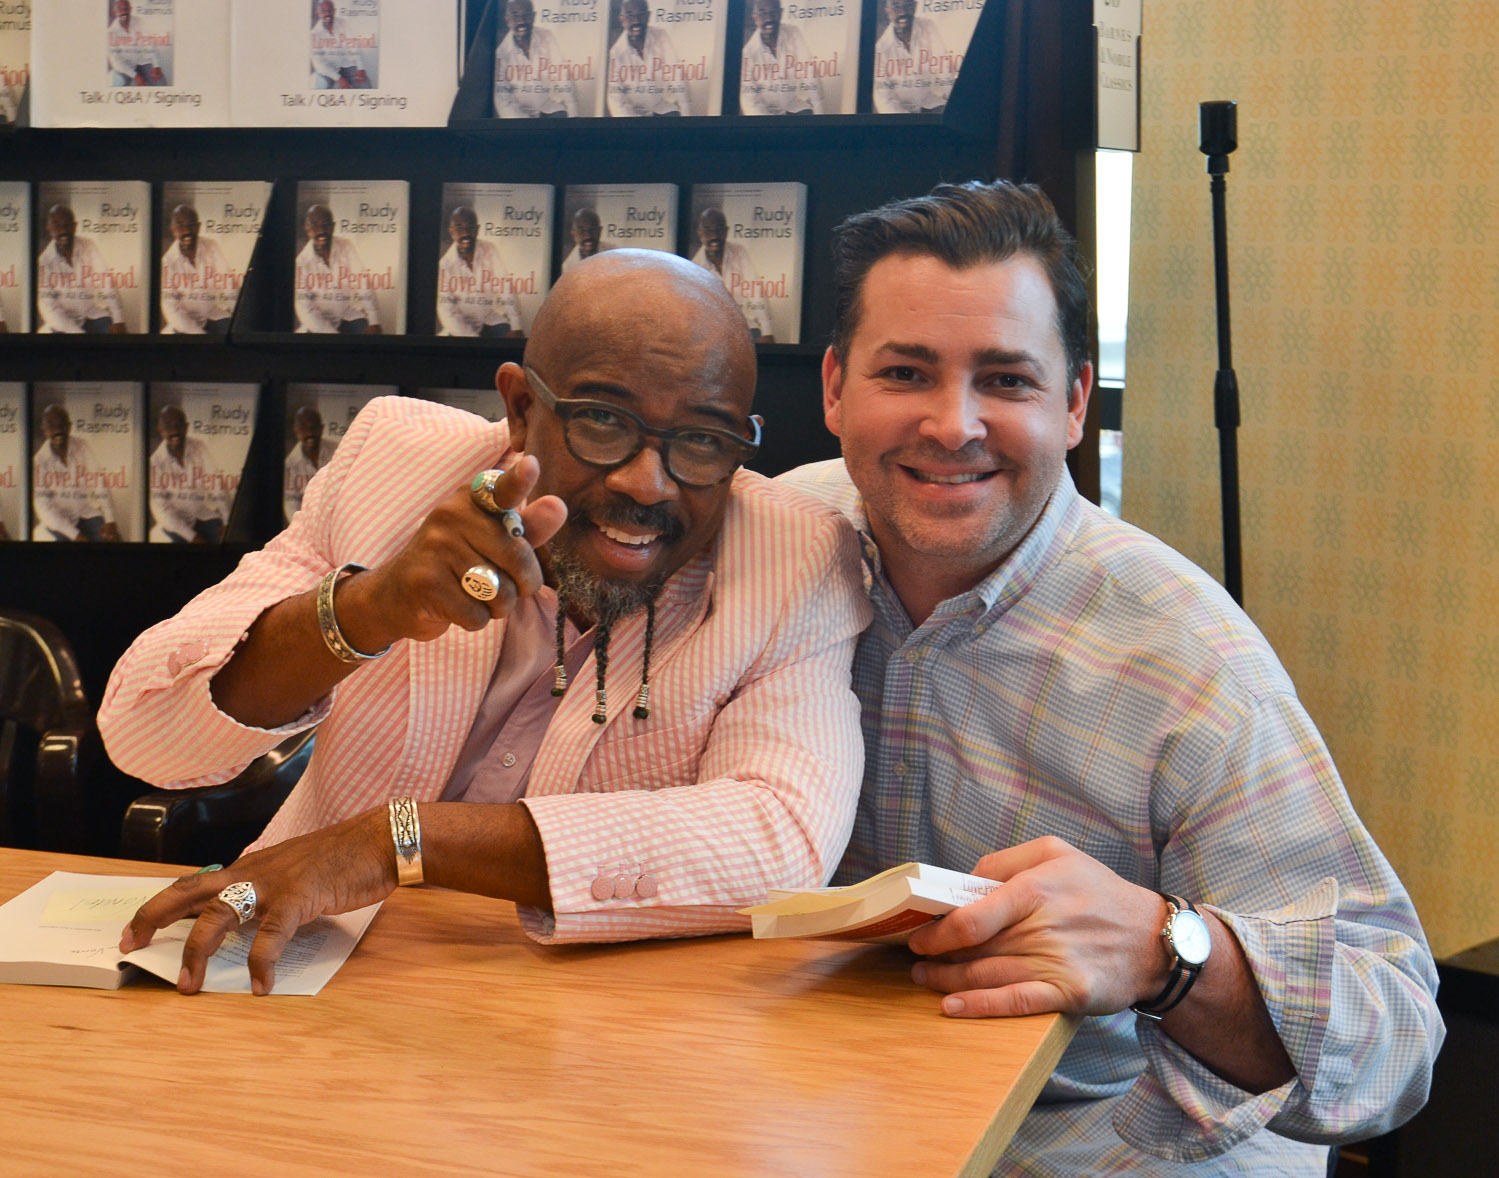 Paster Rudy book signing -0196.jpg